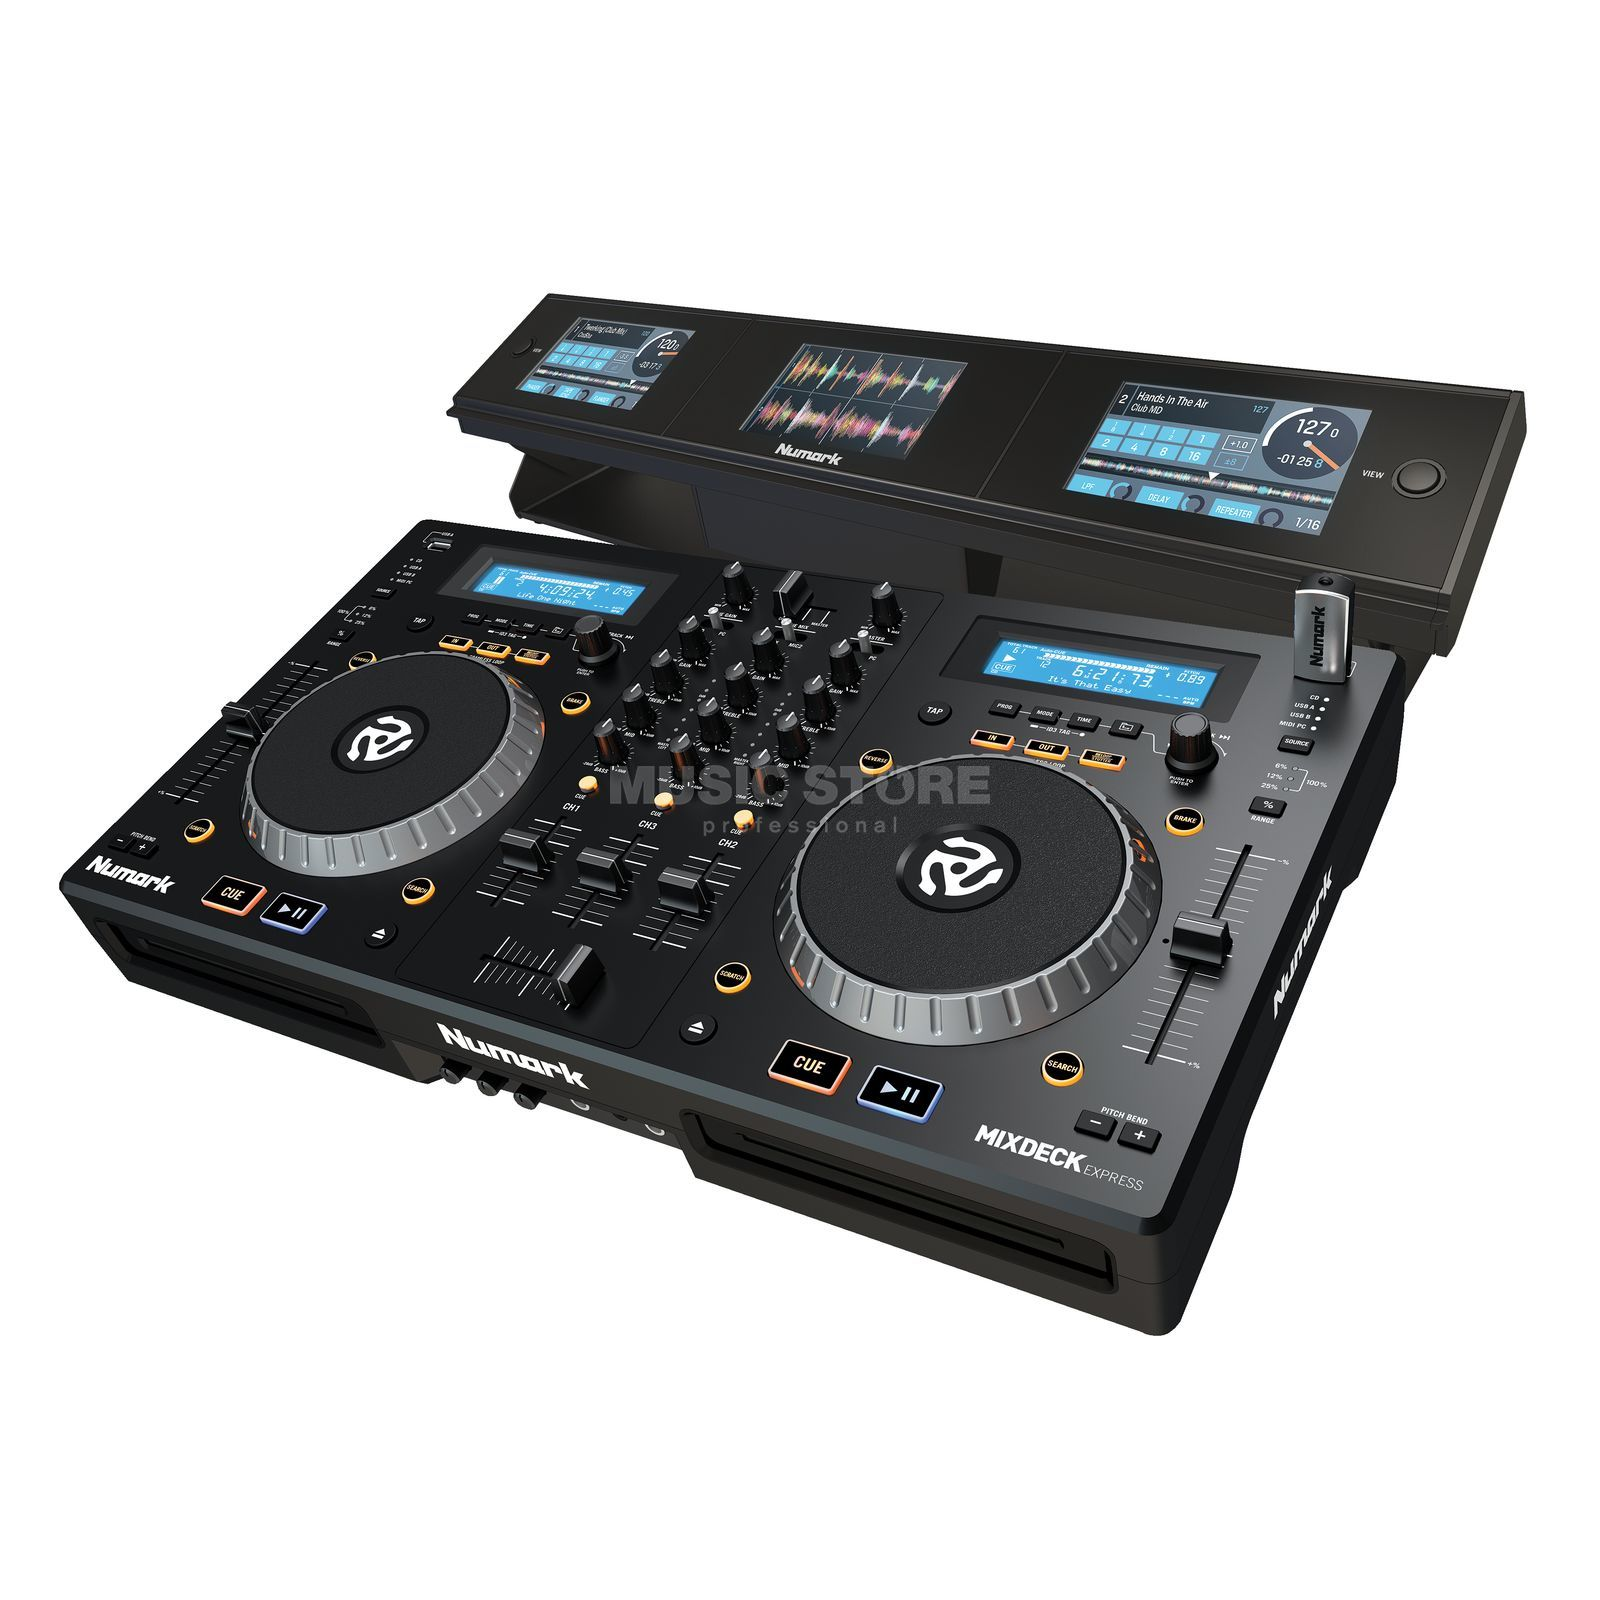 SET Numark Mixdeck Express Black incl. Dashboard Productafbeelding